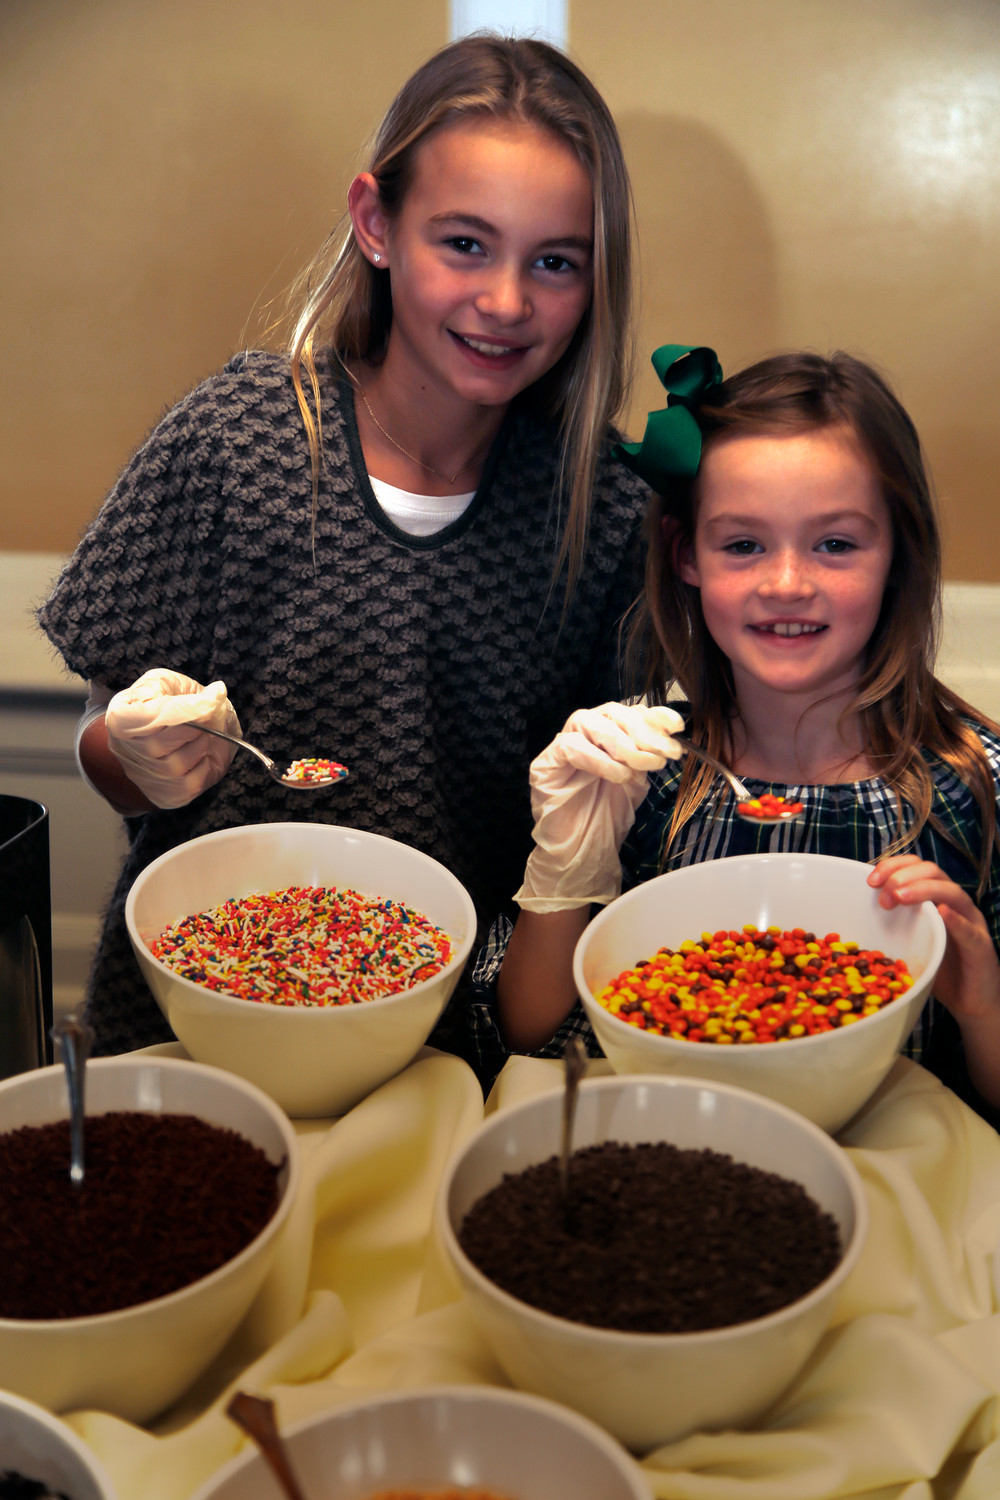 Lily, 11, and Mary Woodstock, 7, manned the dessert table.